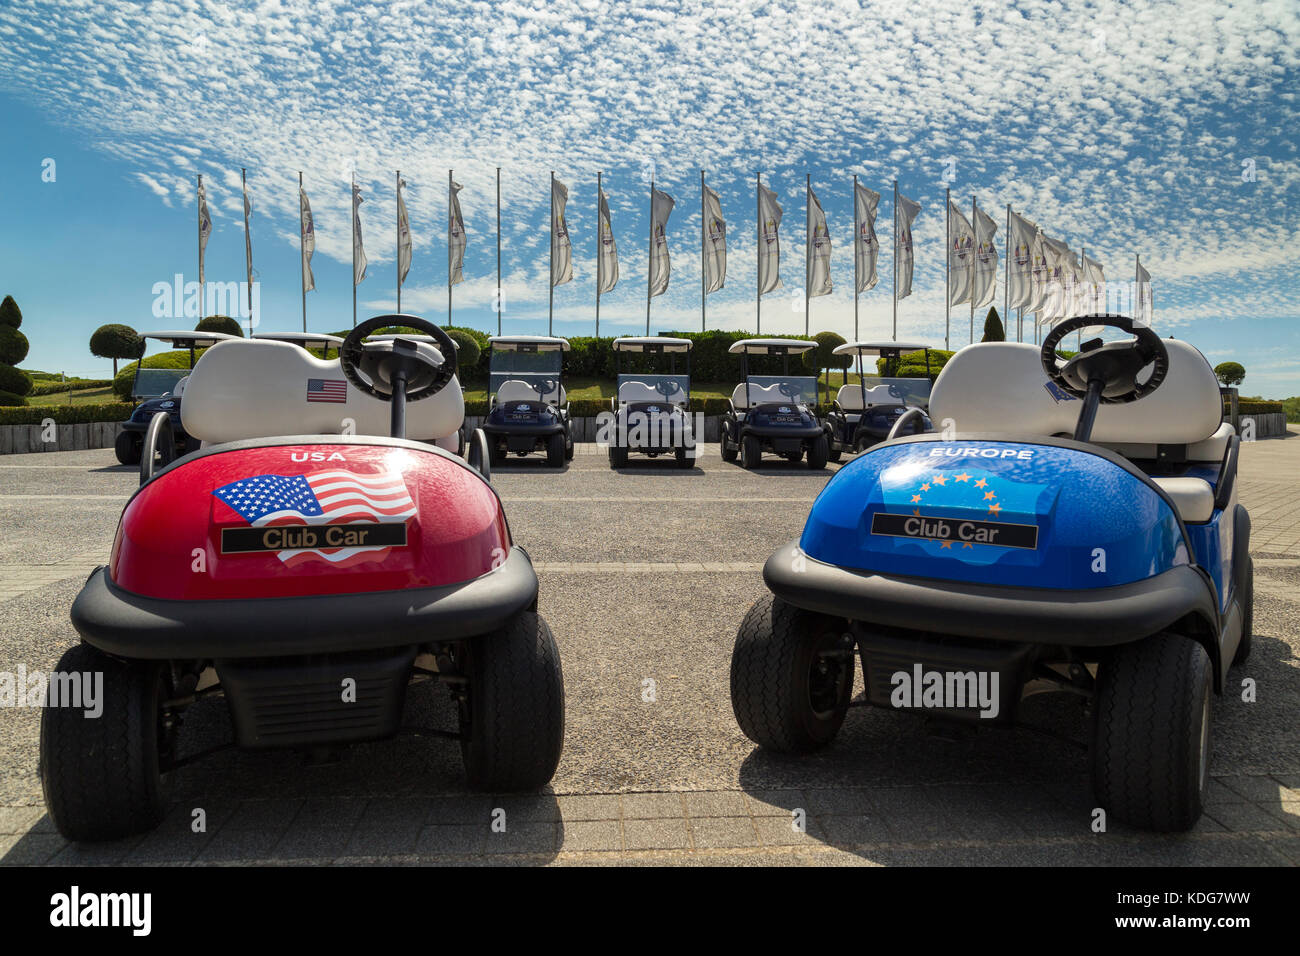 Ryder Cup Flags  & Buggies 2018 - Stock Image